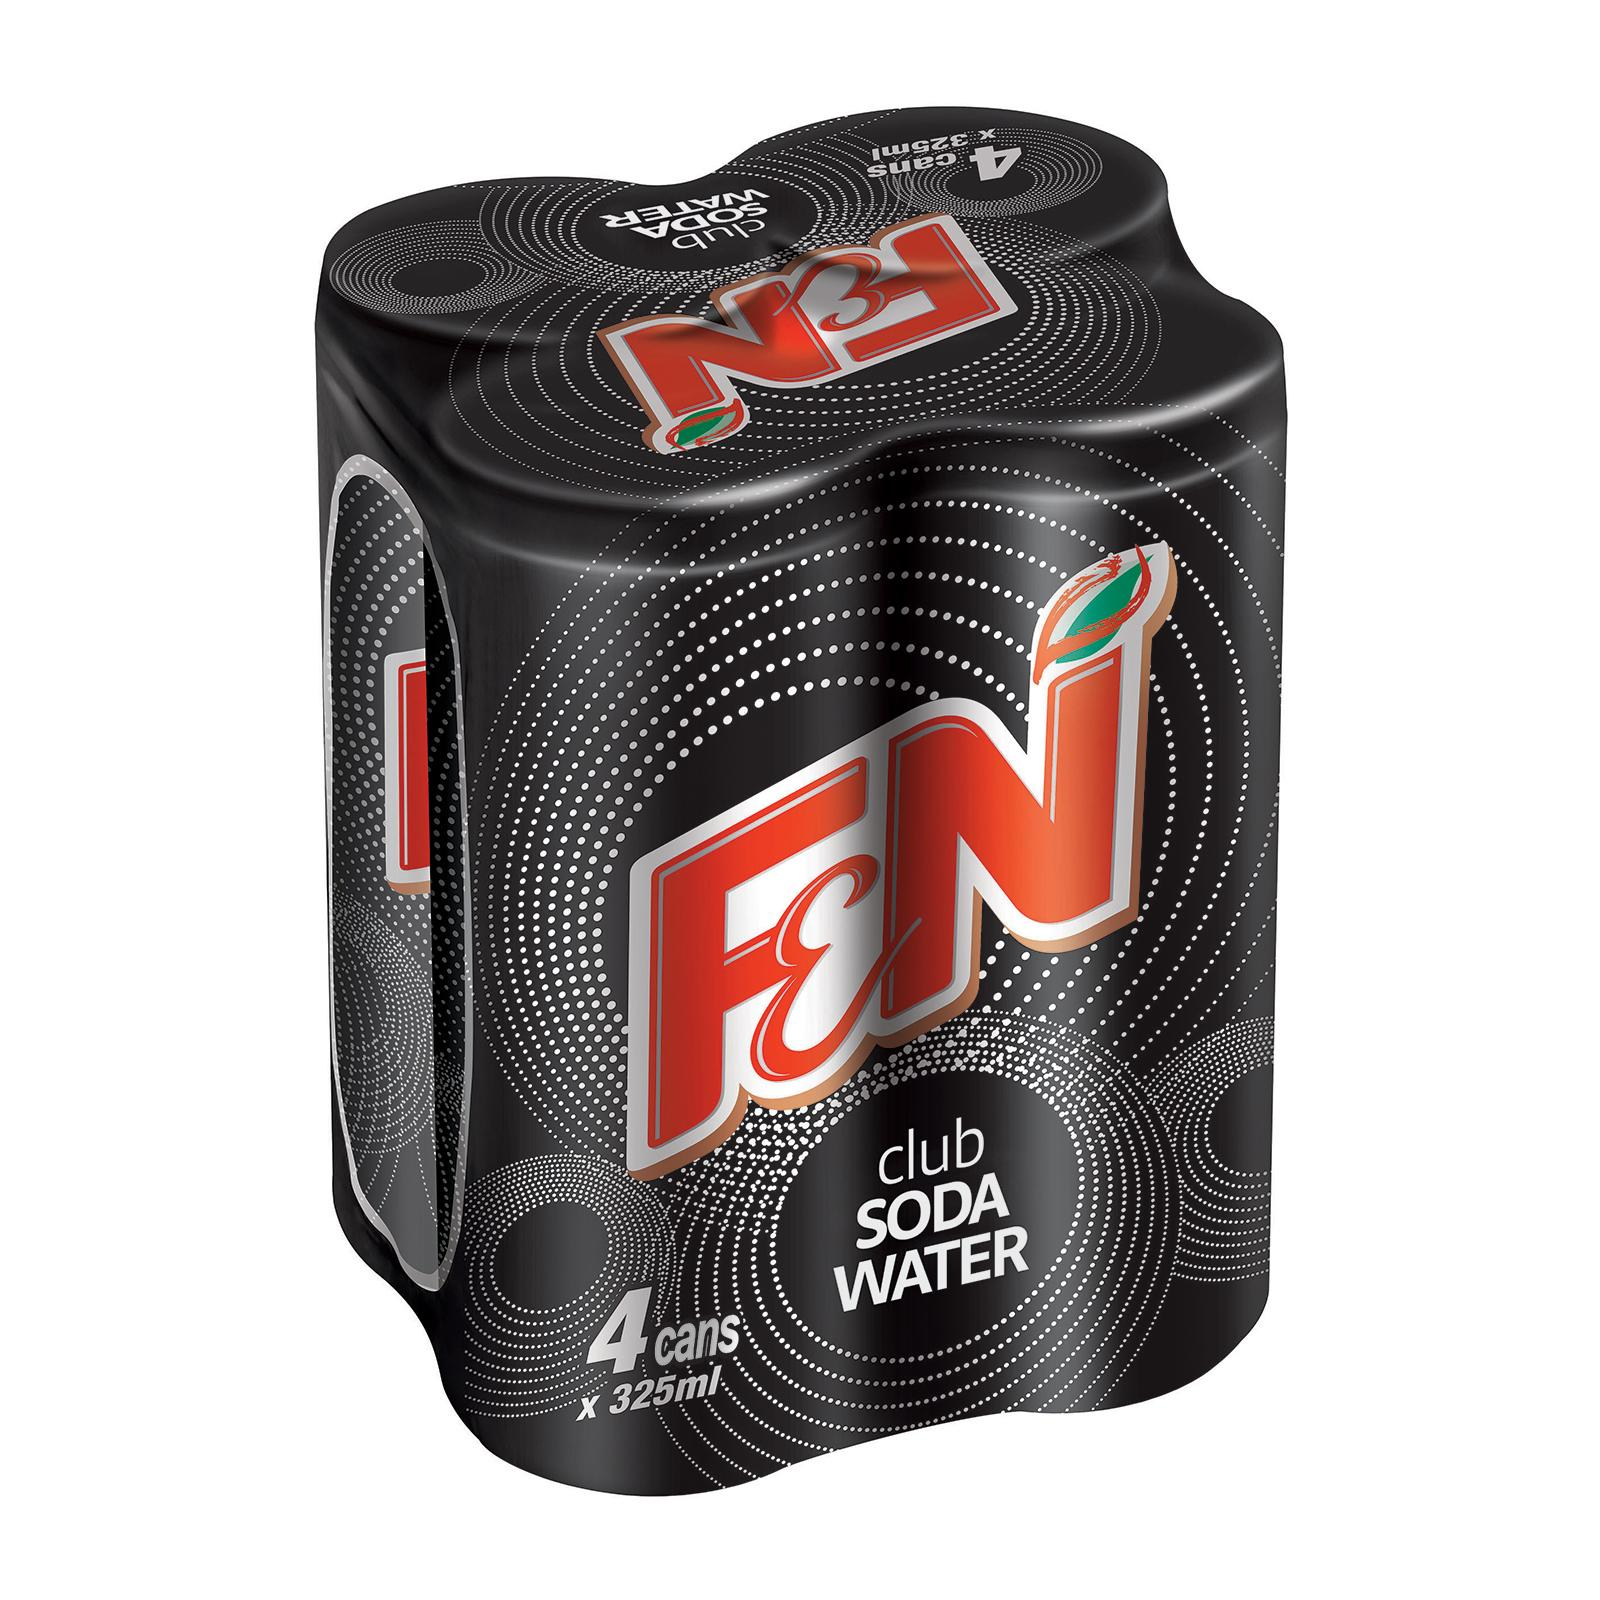 F&N Club Soda Water 4sX325ml